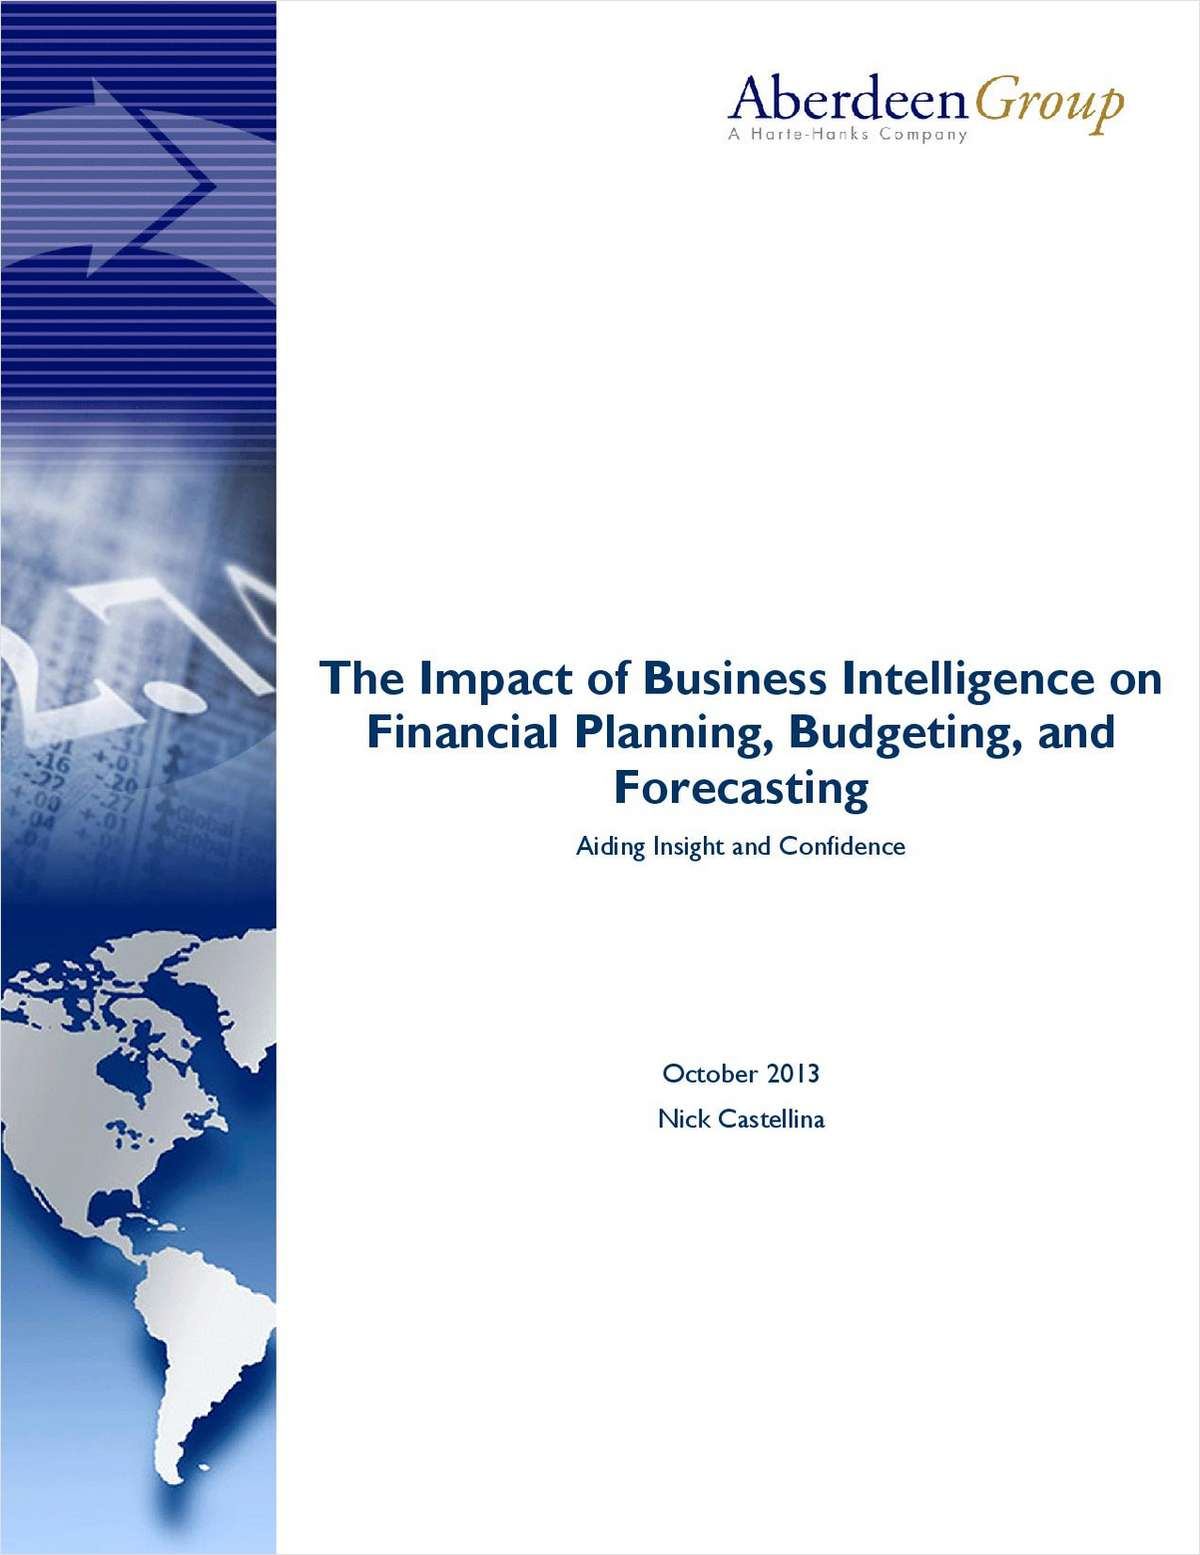 The Impact of Business Intelligence on Financial Planning, Budgeting, and Forecasting: Aiding Insight and Confidence